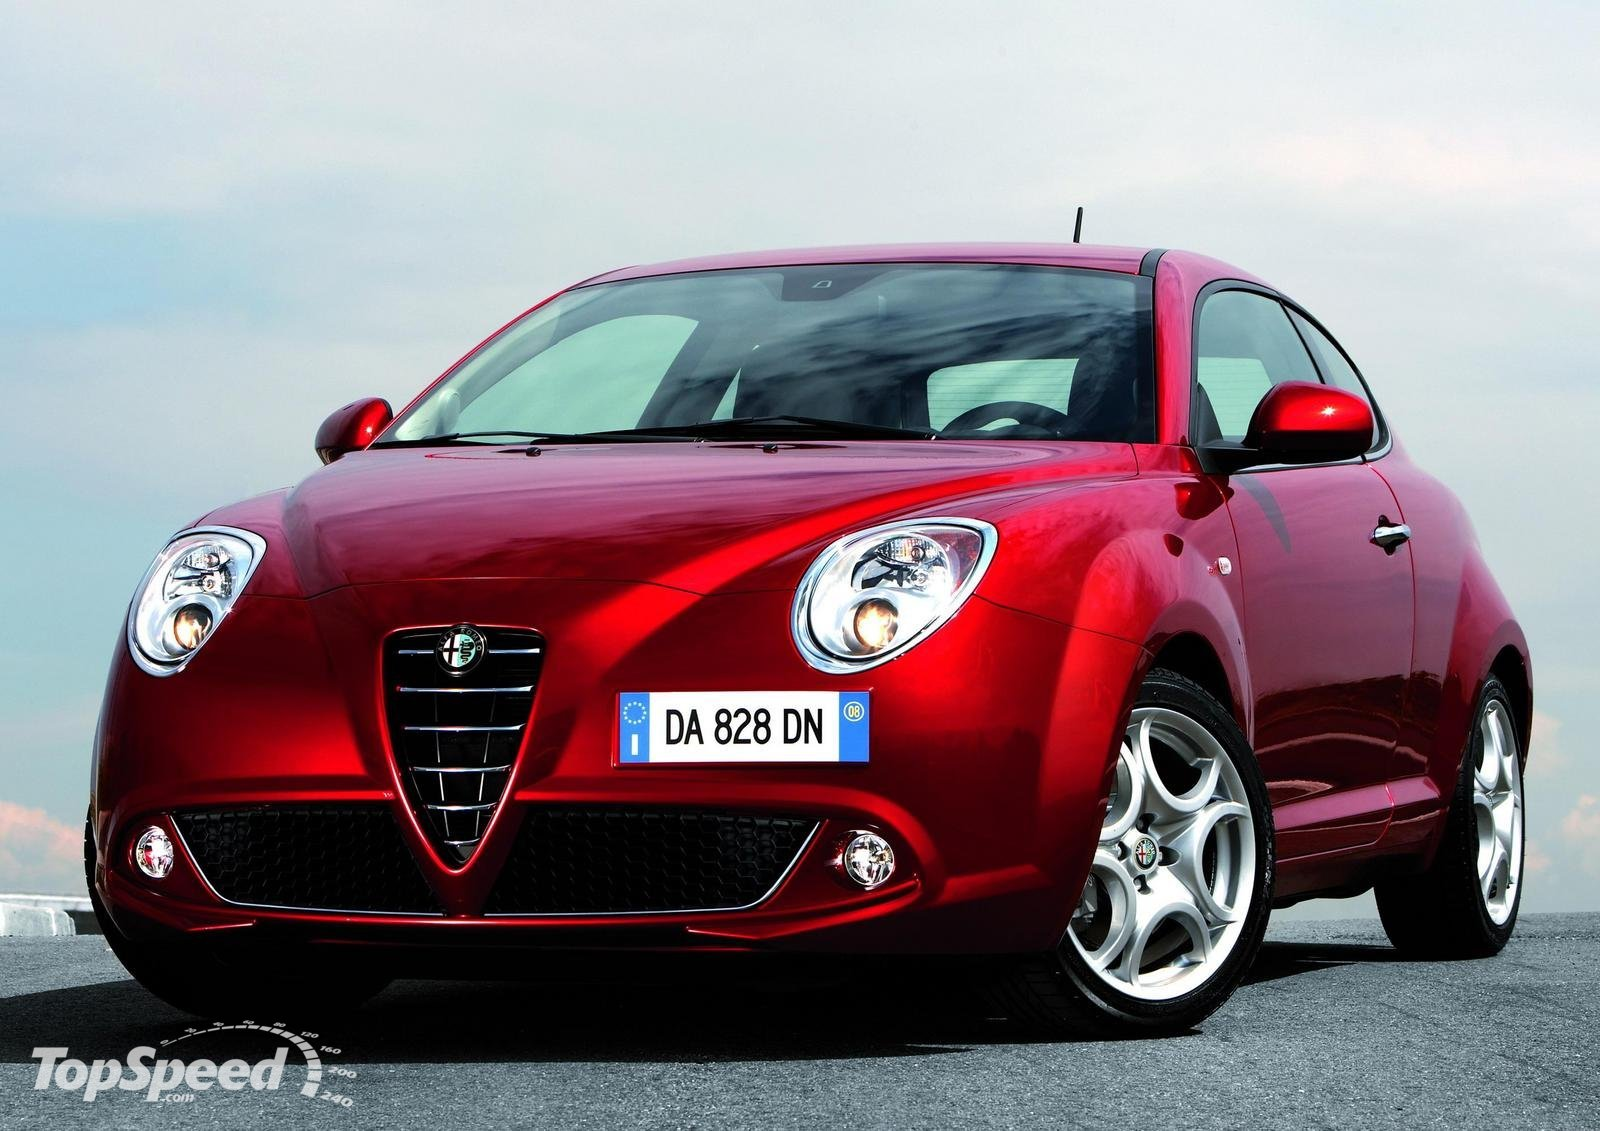 Alfa romeo mito photo - 4